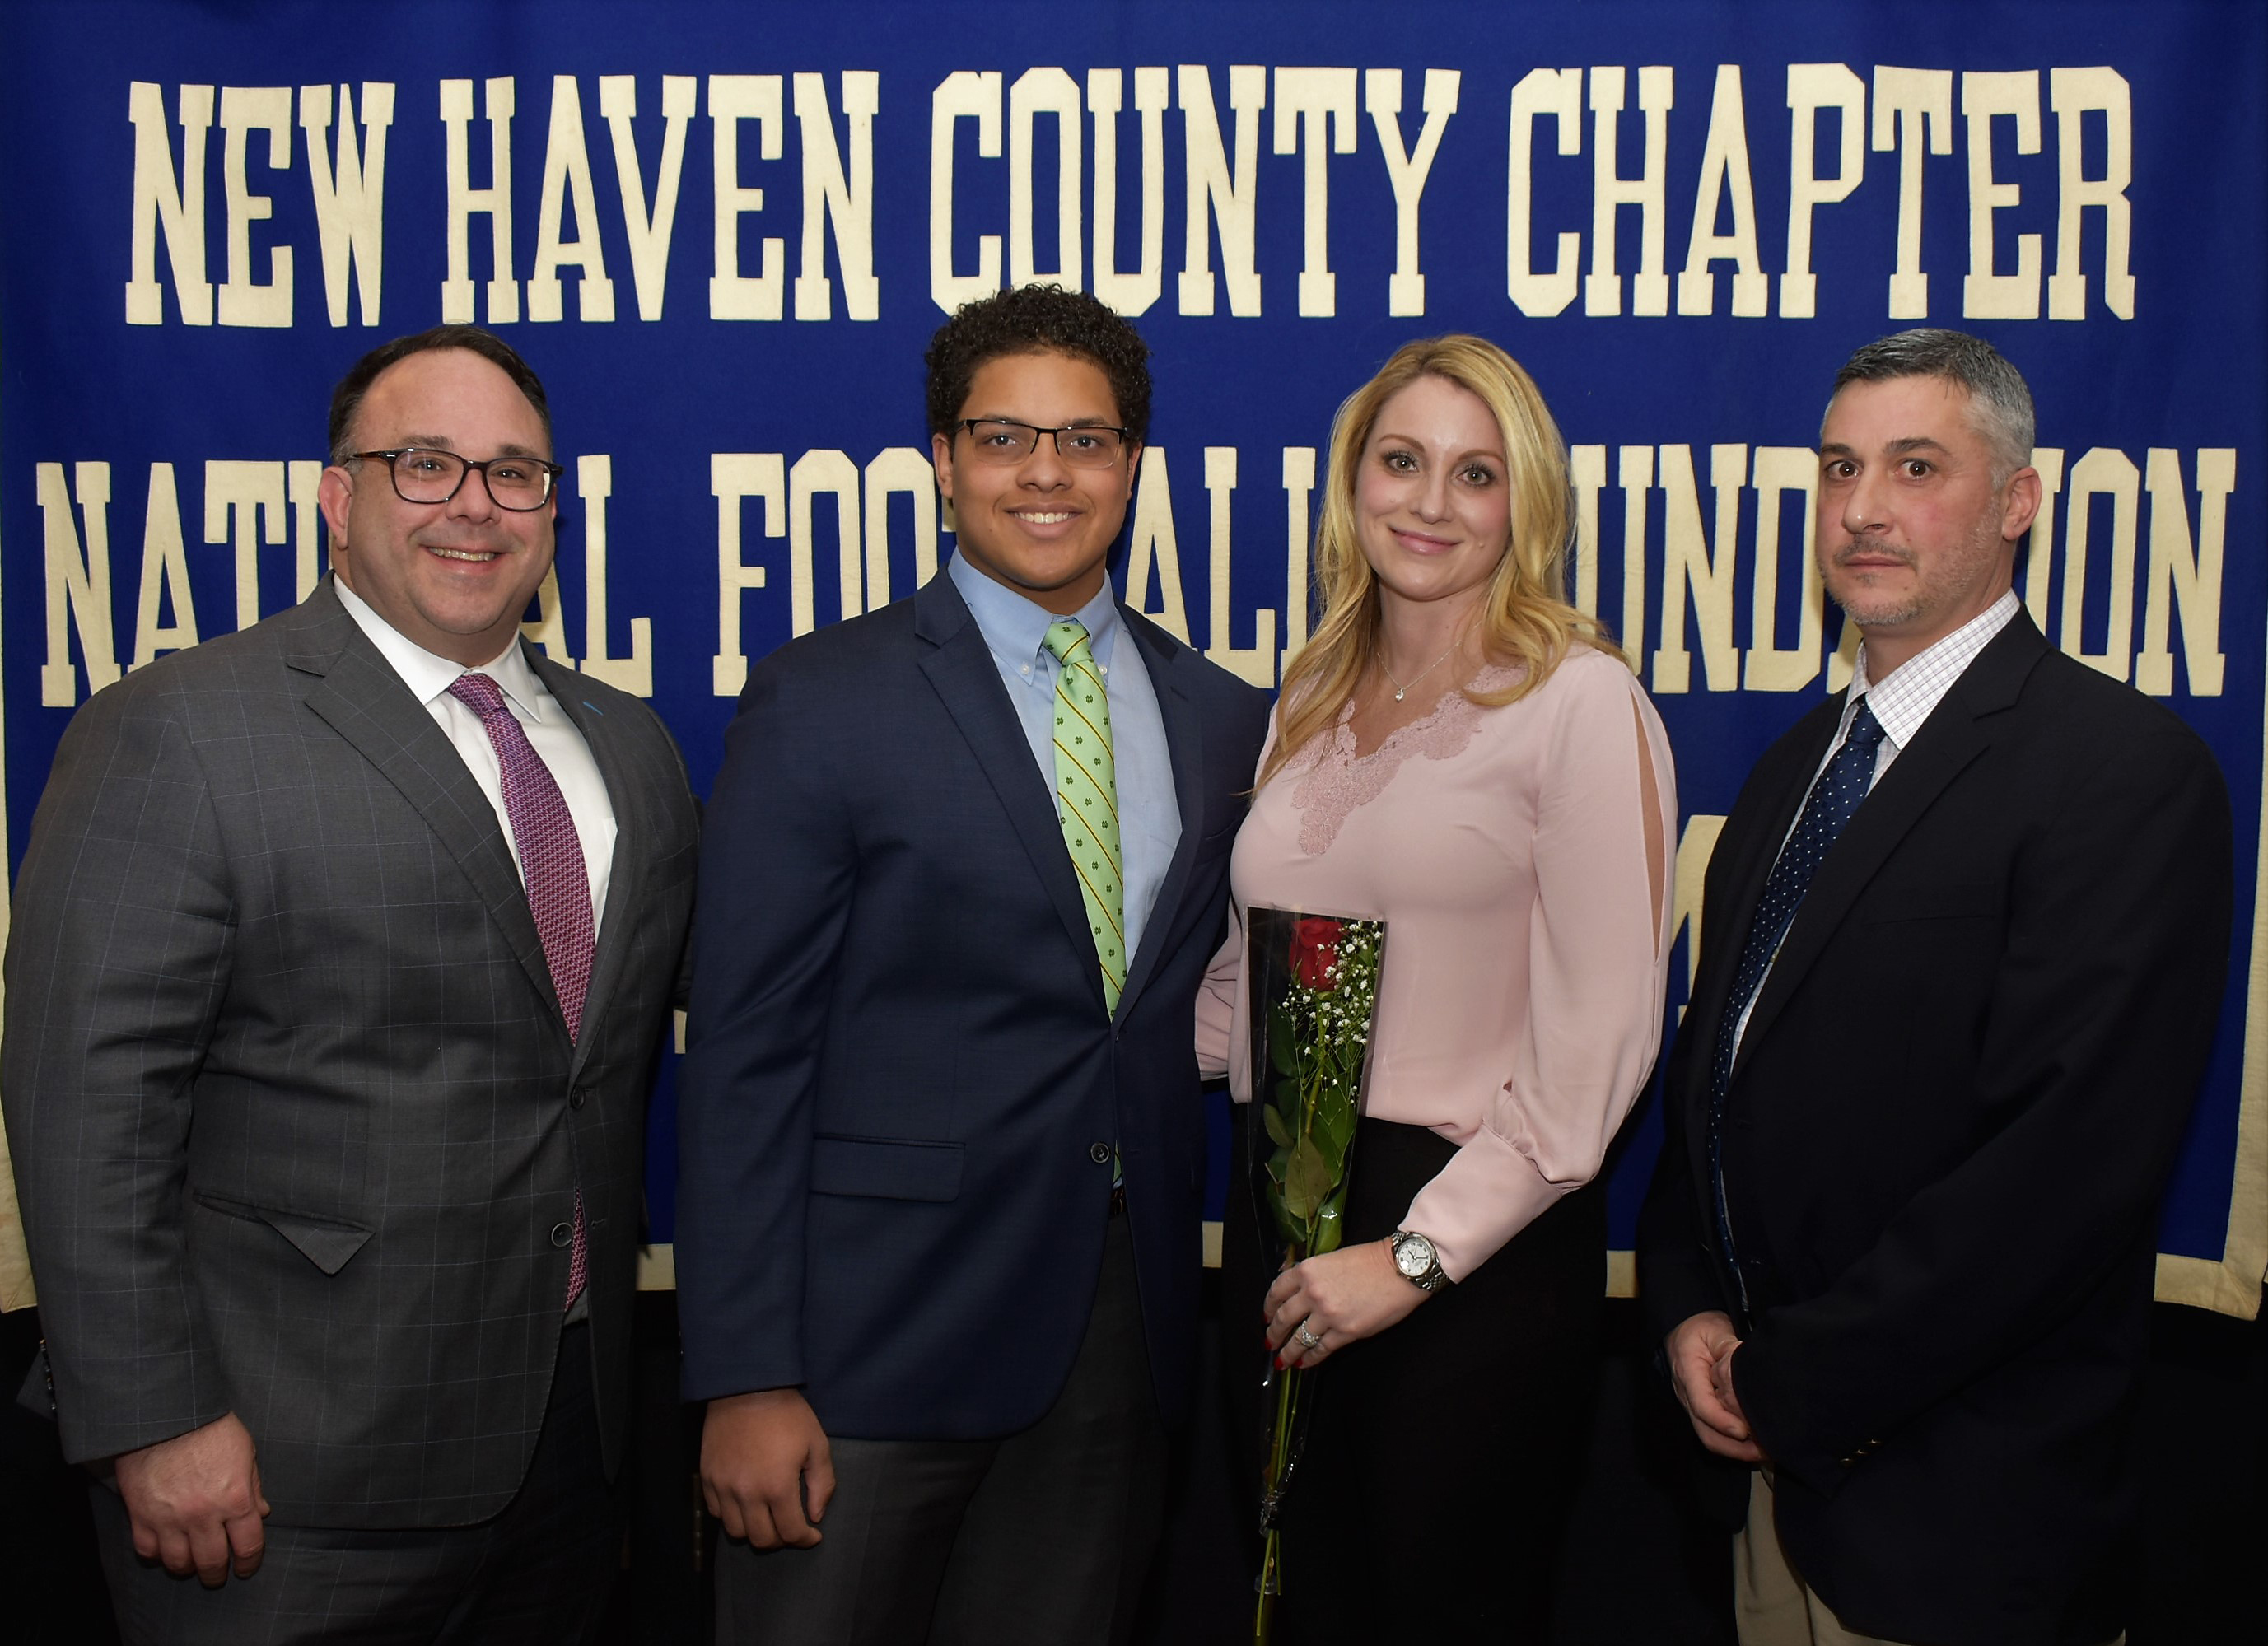 Bell, Manning '19 honorees by NF chapter